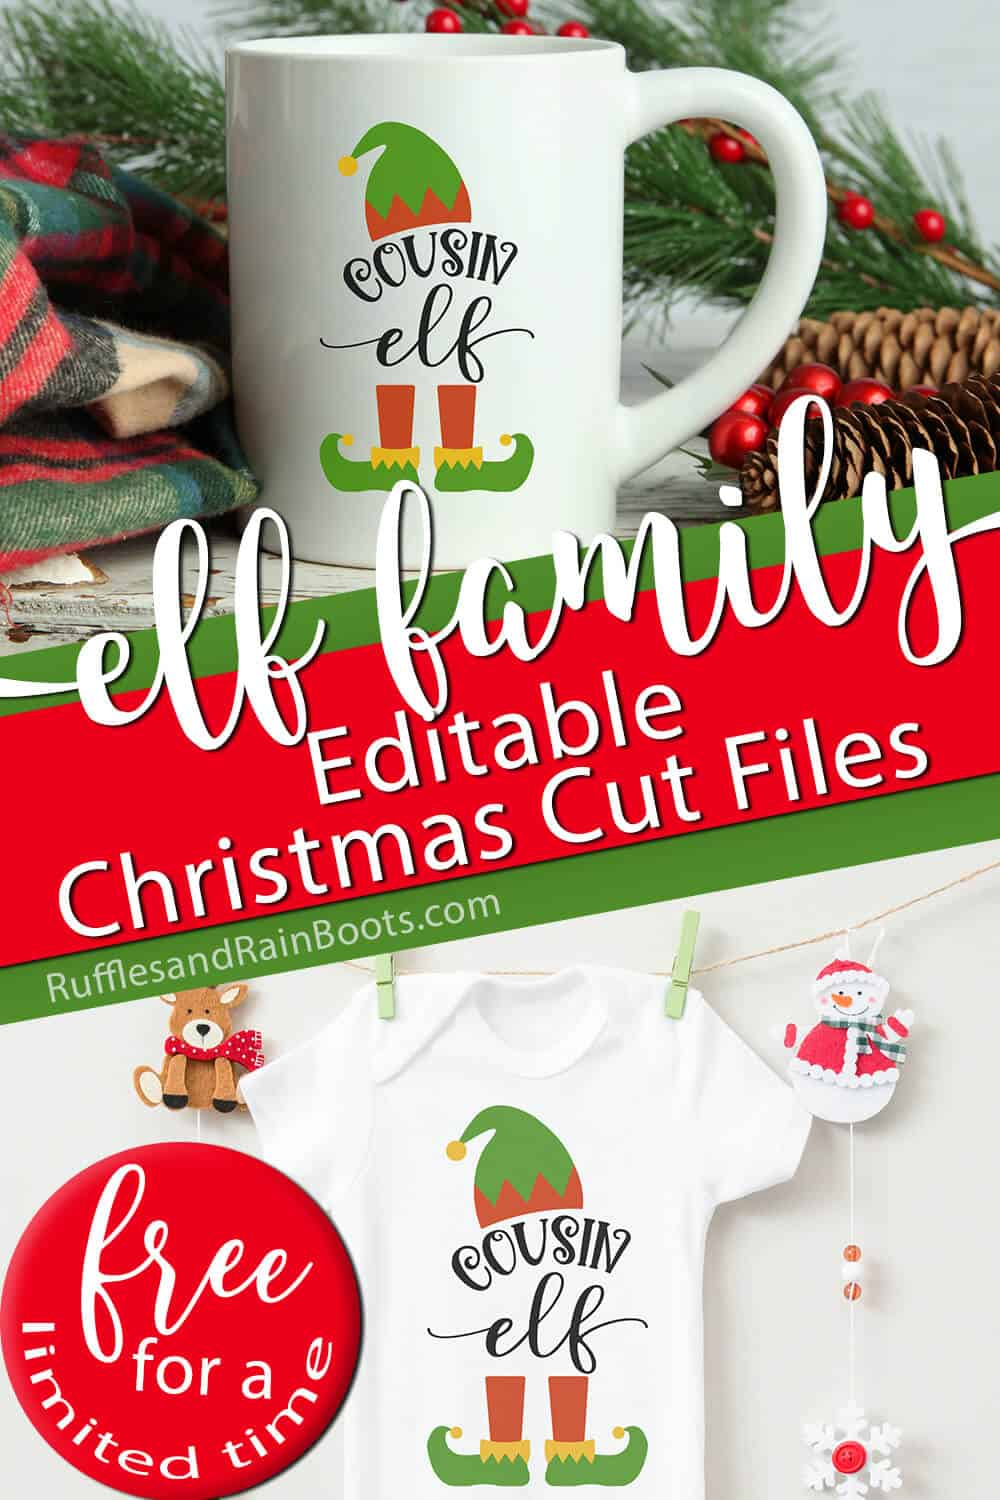 photo collage of mug and onesie with the cousin elf cut file on them with text which reads elf family editable christmas cut files